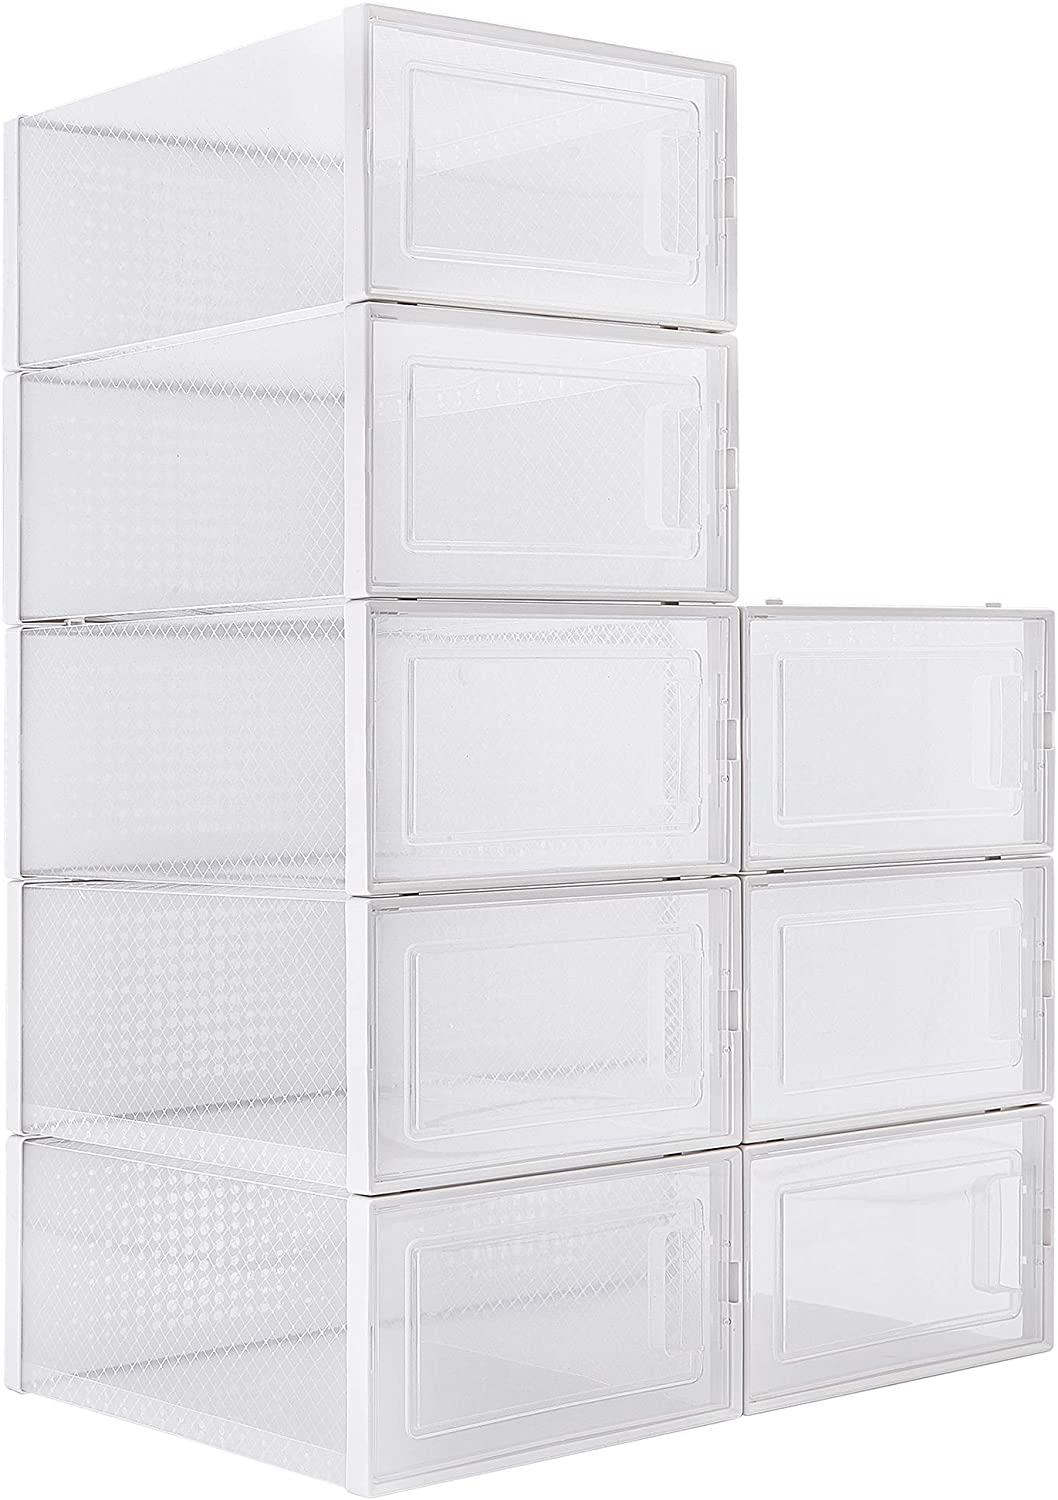 WAYTRIM Foldable Shoe Box Stackable St Clear 4 years warranty Storage service -